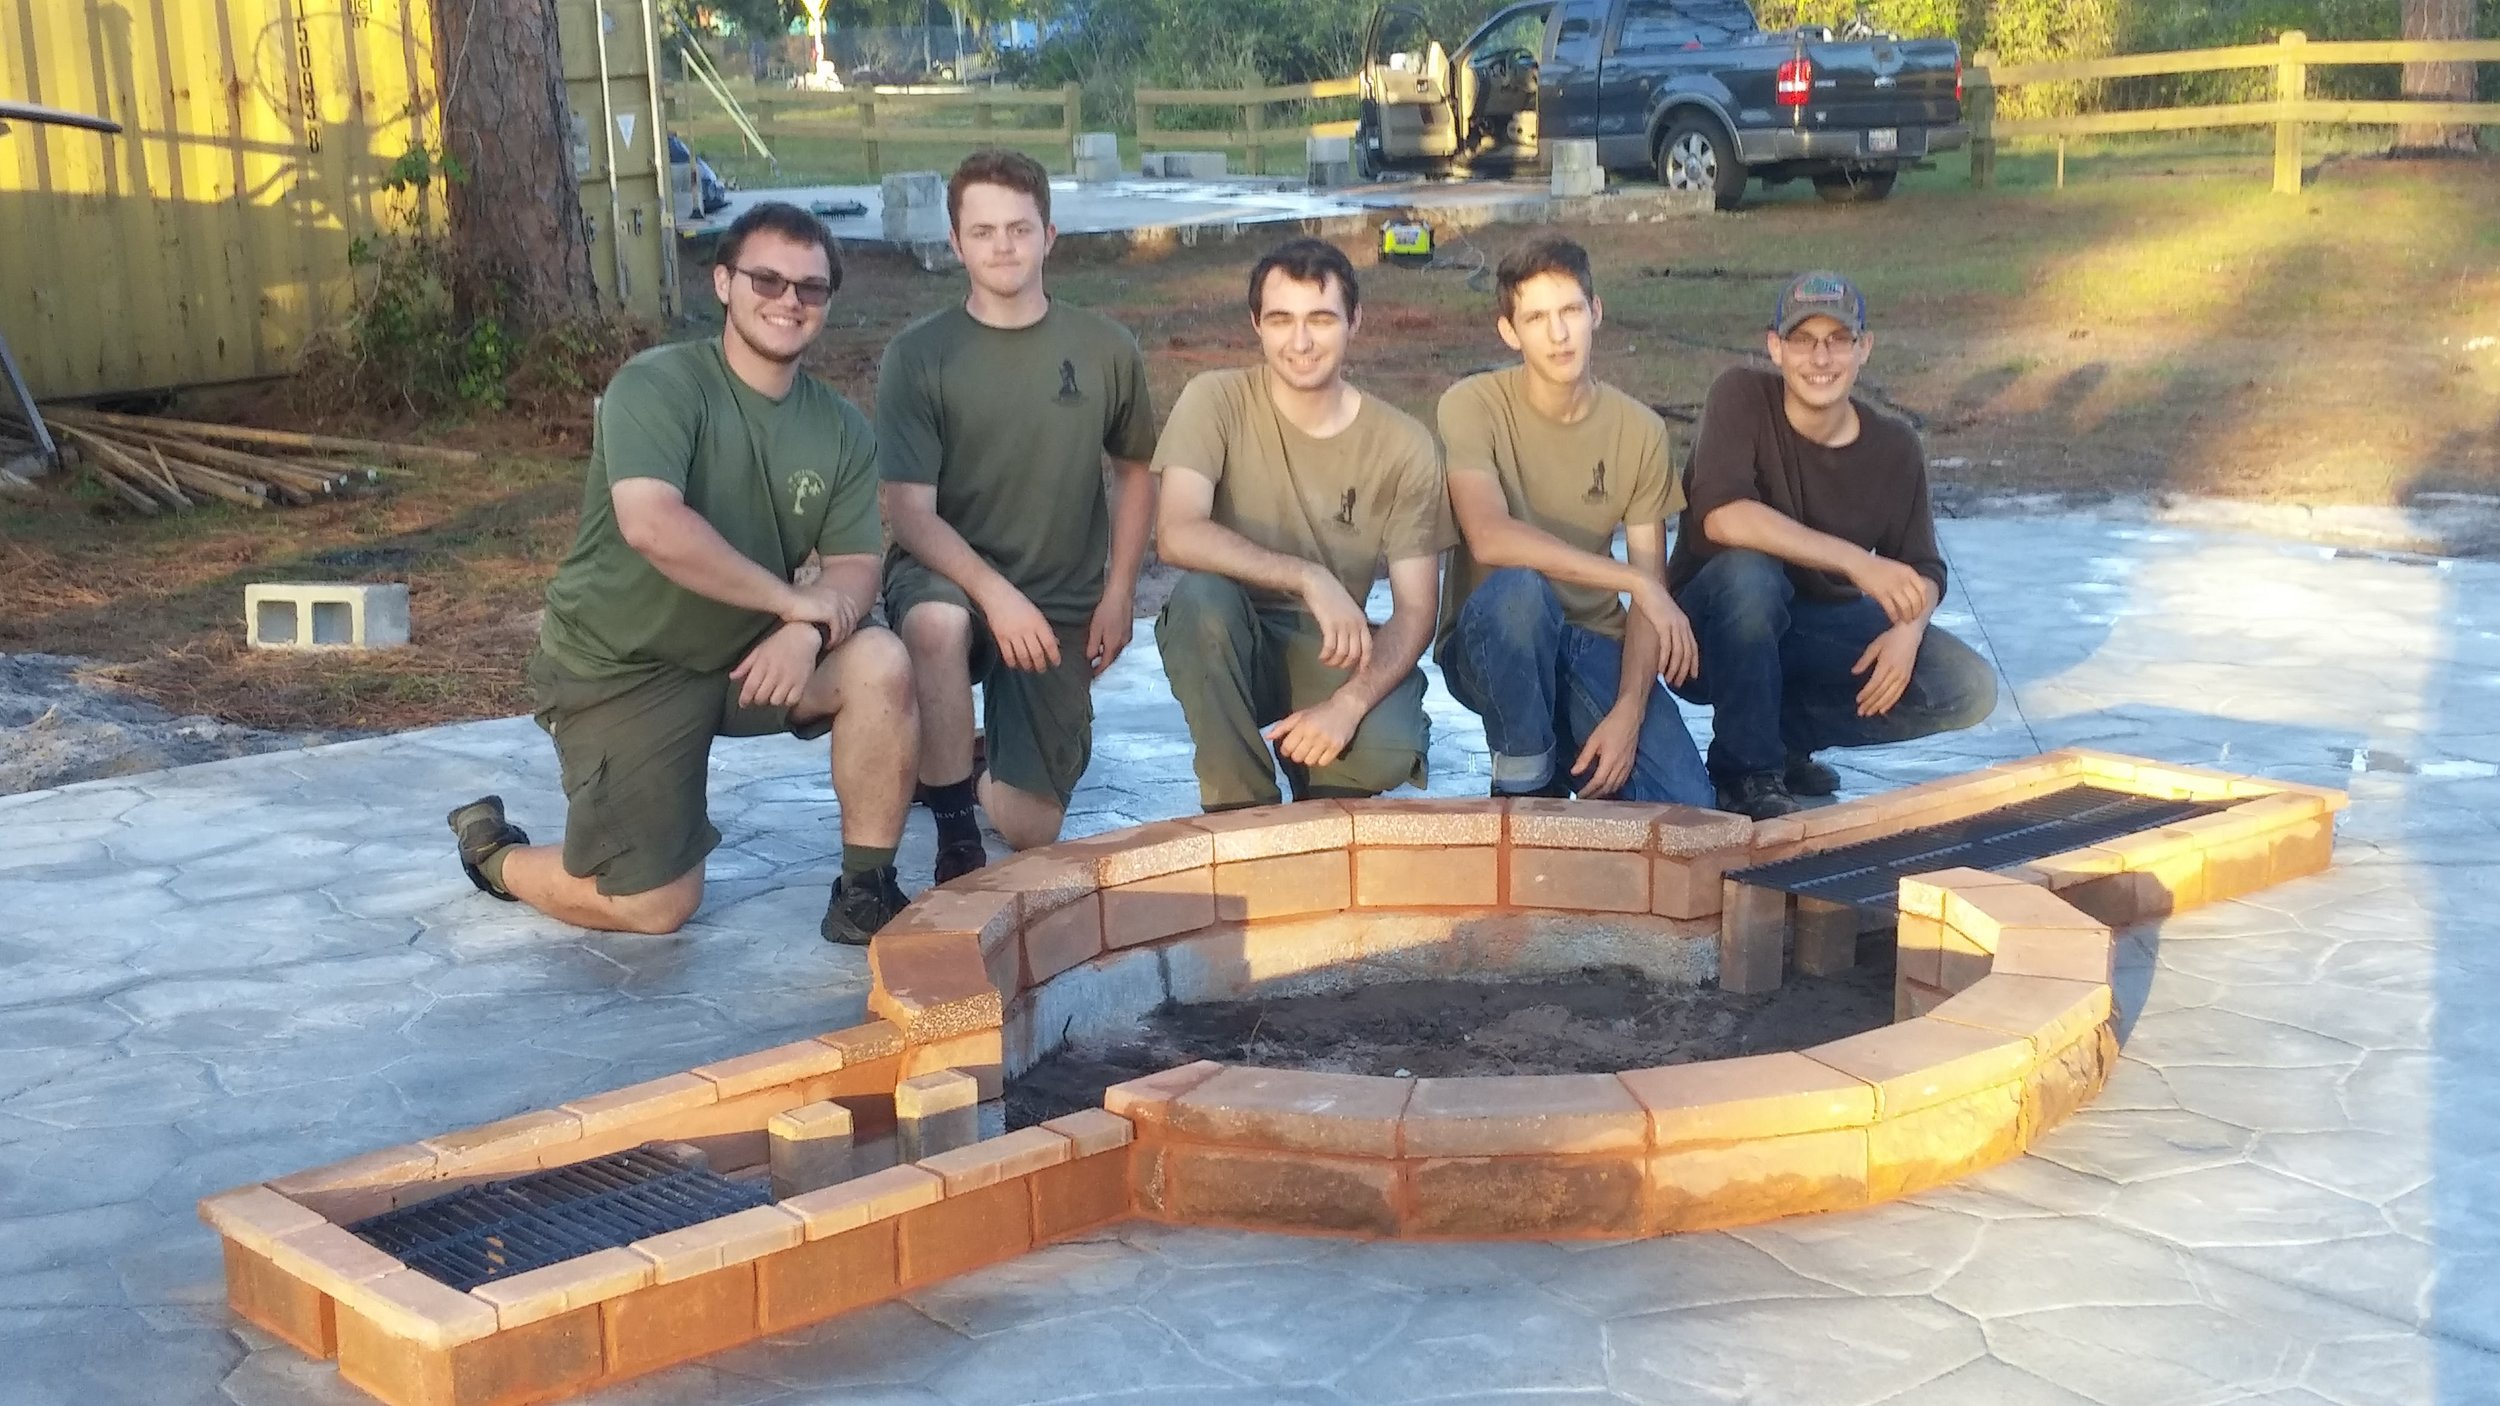 Job well done Zachary, Fellow Scouts & Leaders, Adult & Sibling helpers, and Donors!   The fire pit will be used as a center point for many activities for many groups for many years!